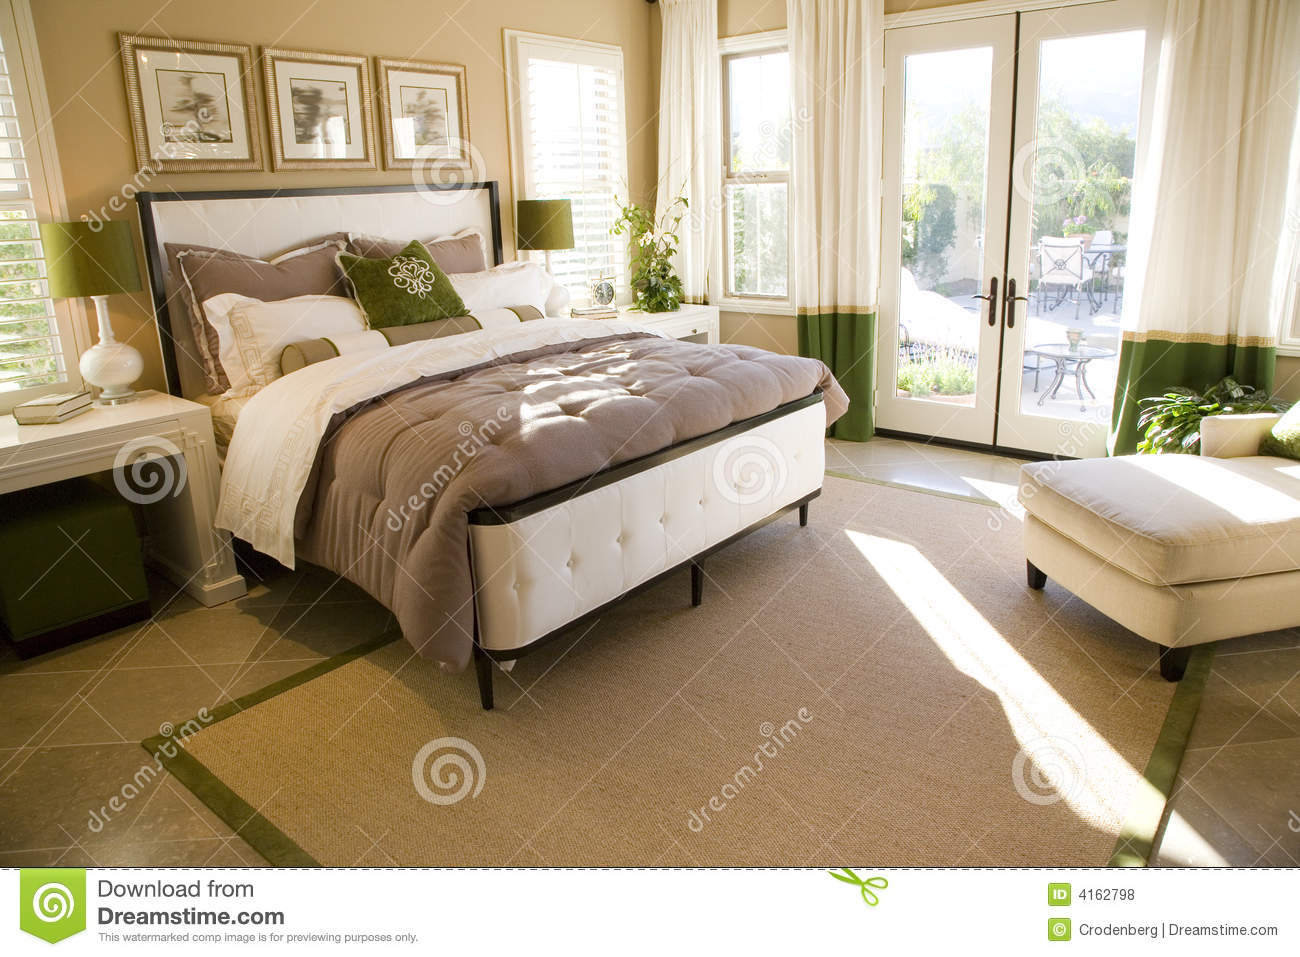 https://thumbs.dreamstime.com/z/camera-da-letto-domestica-di-lusso-4162798.jpg